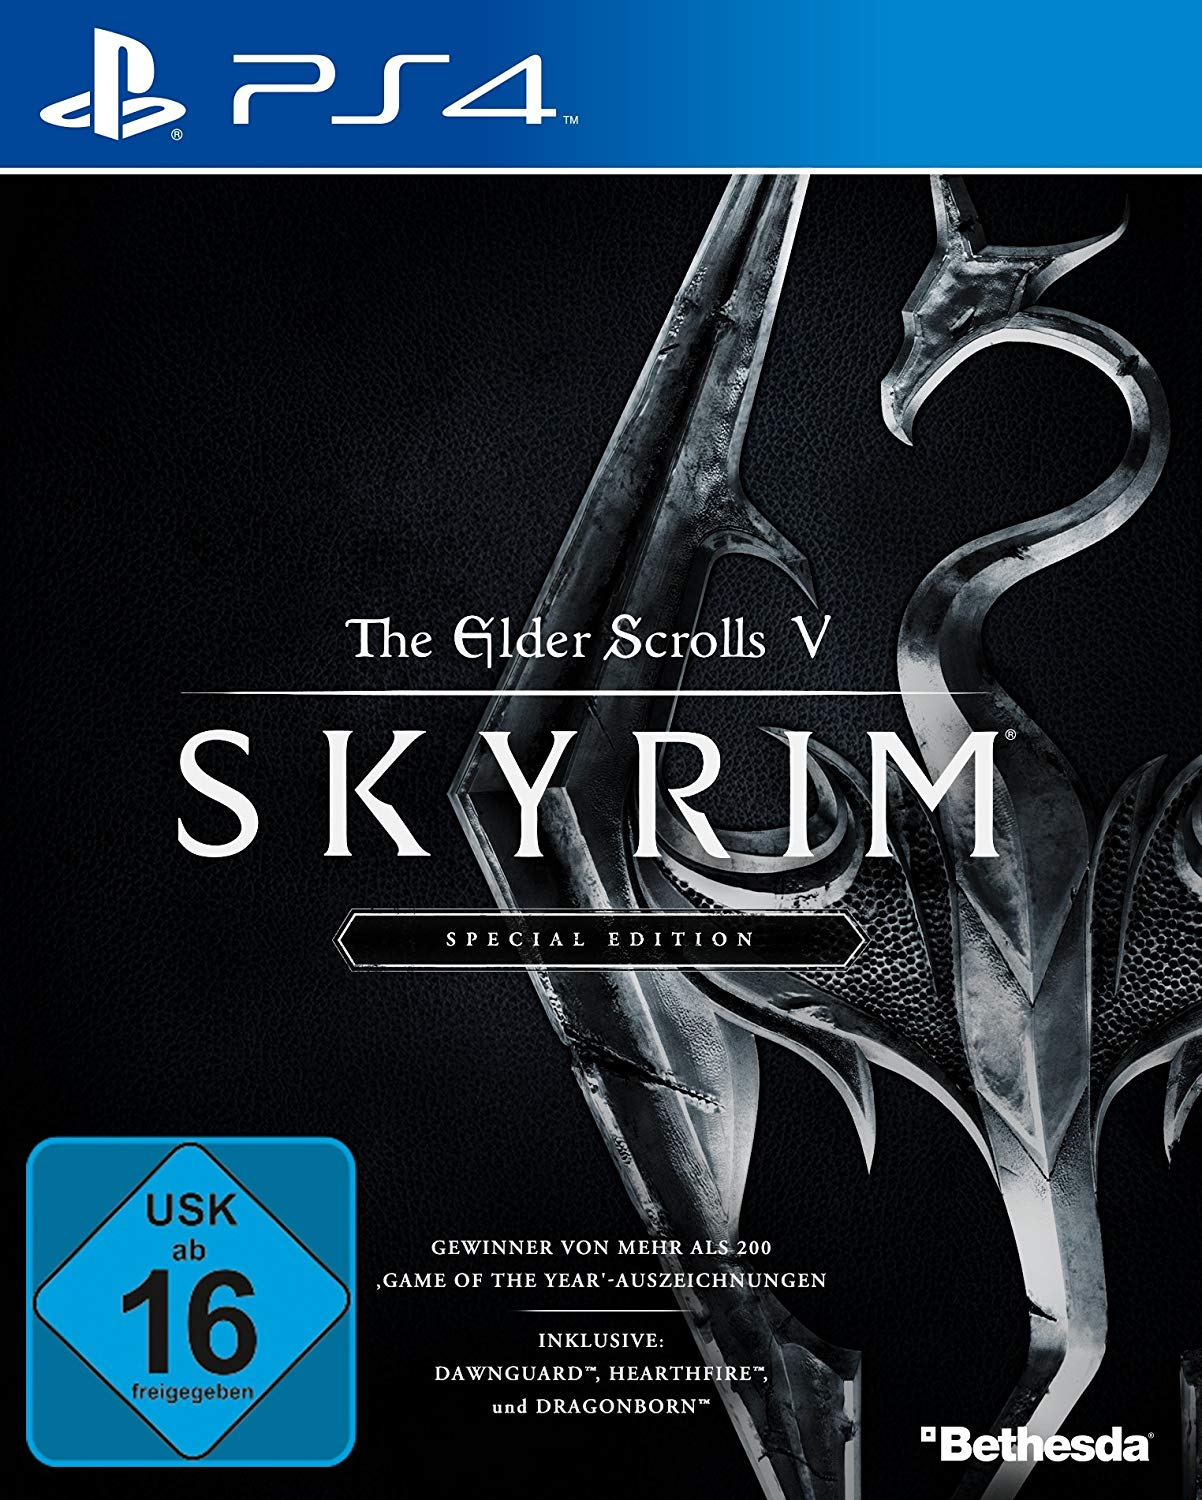 PS4 The Elder Scrolls V Skyrim Edition amazon